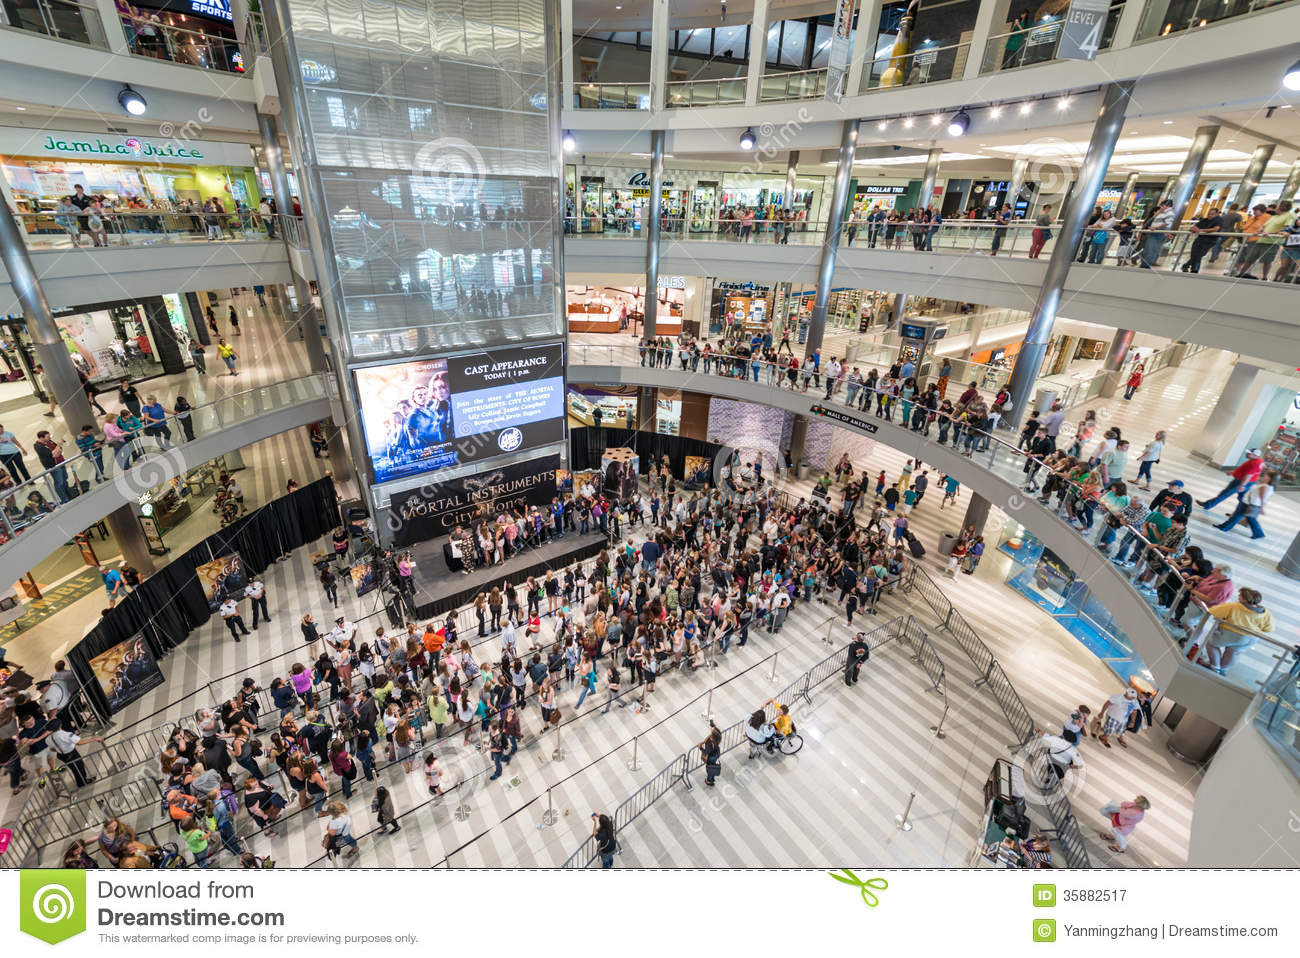 Jobs for 16,17,18 and 19 year olds teenagers at the Mall of America and Nickelodeon Universe in Minnesota. About Mall of America Mall of America is a shopping mall located in the South Loop District of Bloomington, Minnesota.